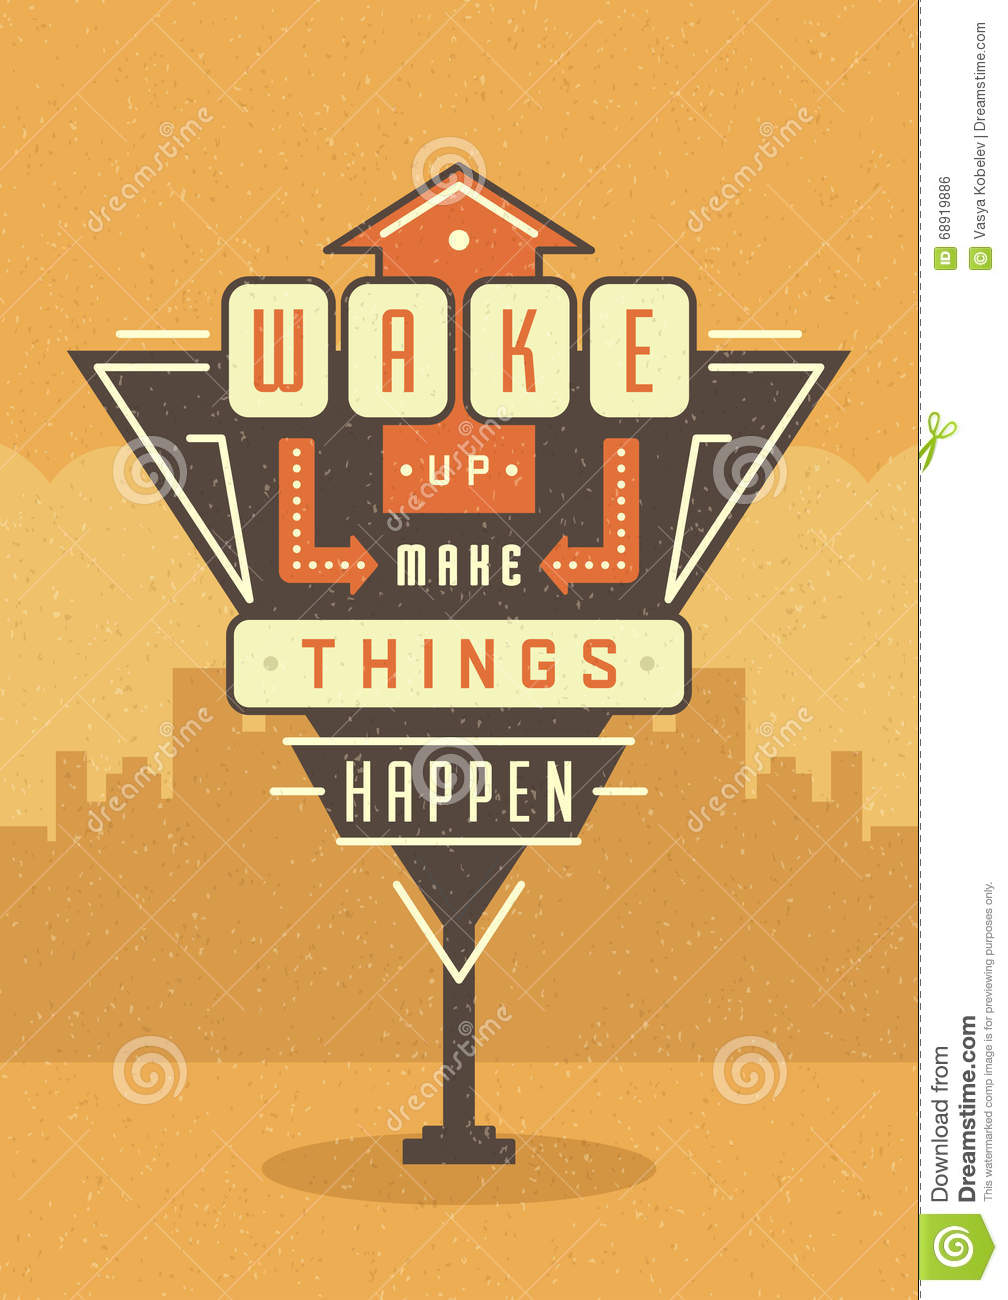 Make a poster design - Retro Sign Billboard Typographic Quote Poster Design Wake Up Make Things Happen Stock Vector